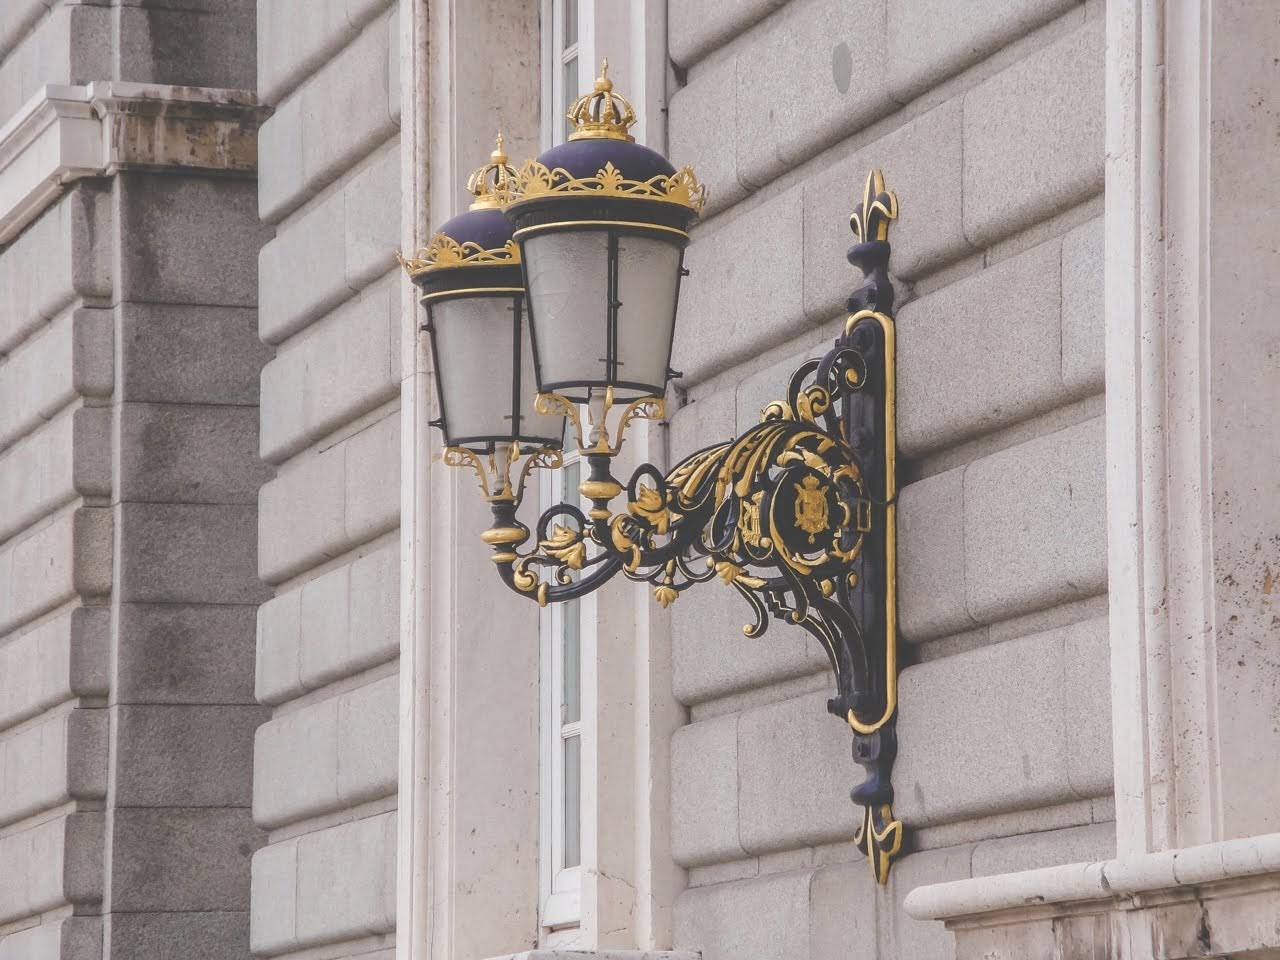 A beautiful light fixture on the outside of the palace that is black and gold